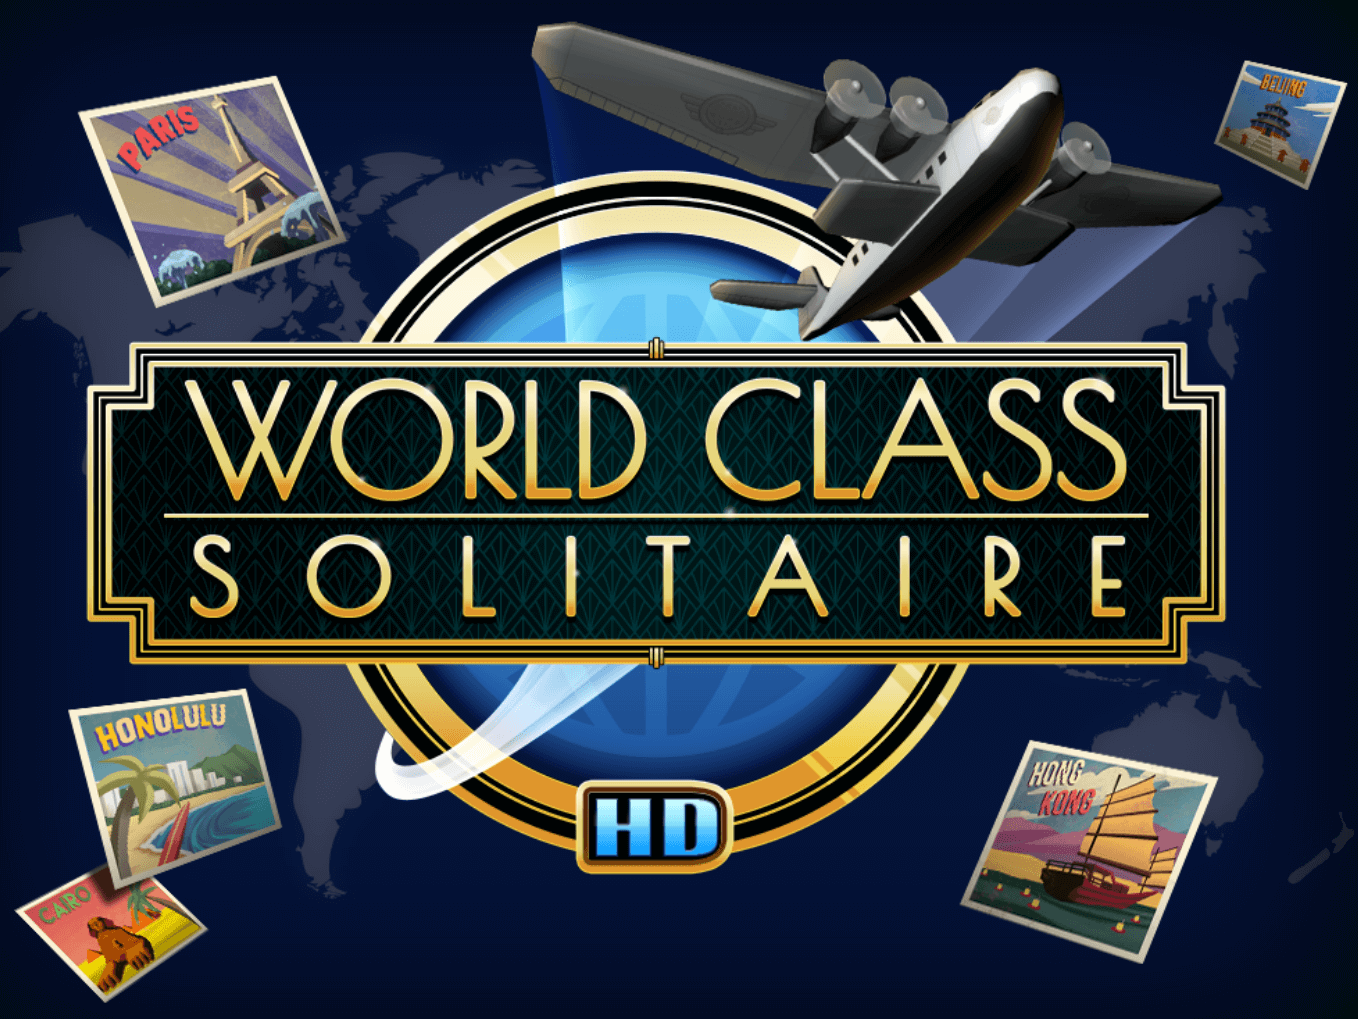 Now available world class solitaire hd for Gold fish casino promo codes